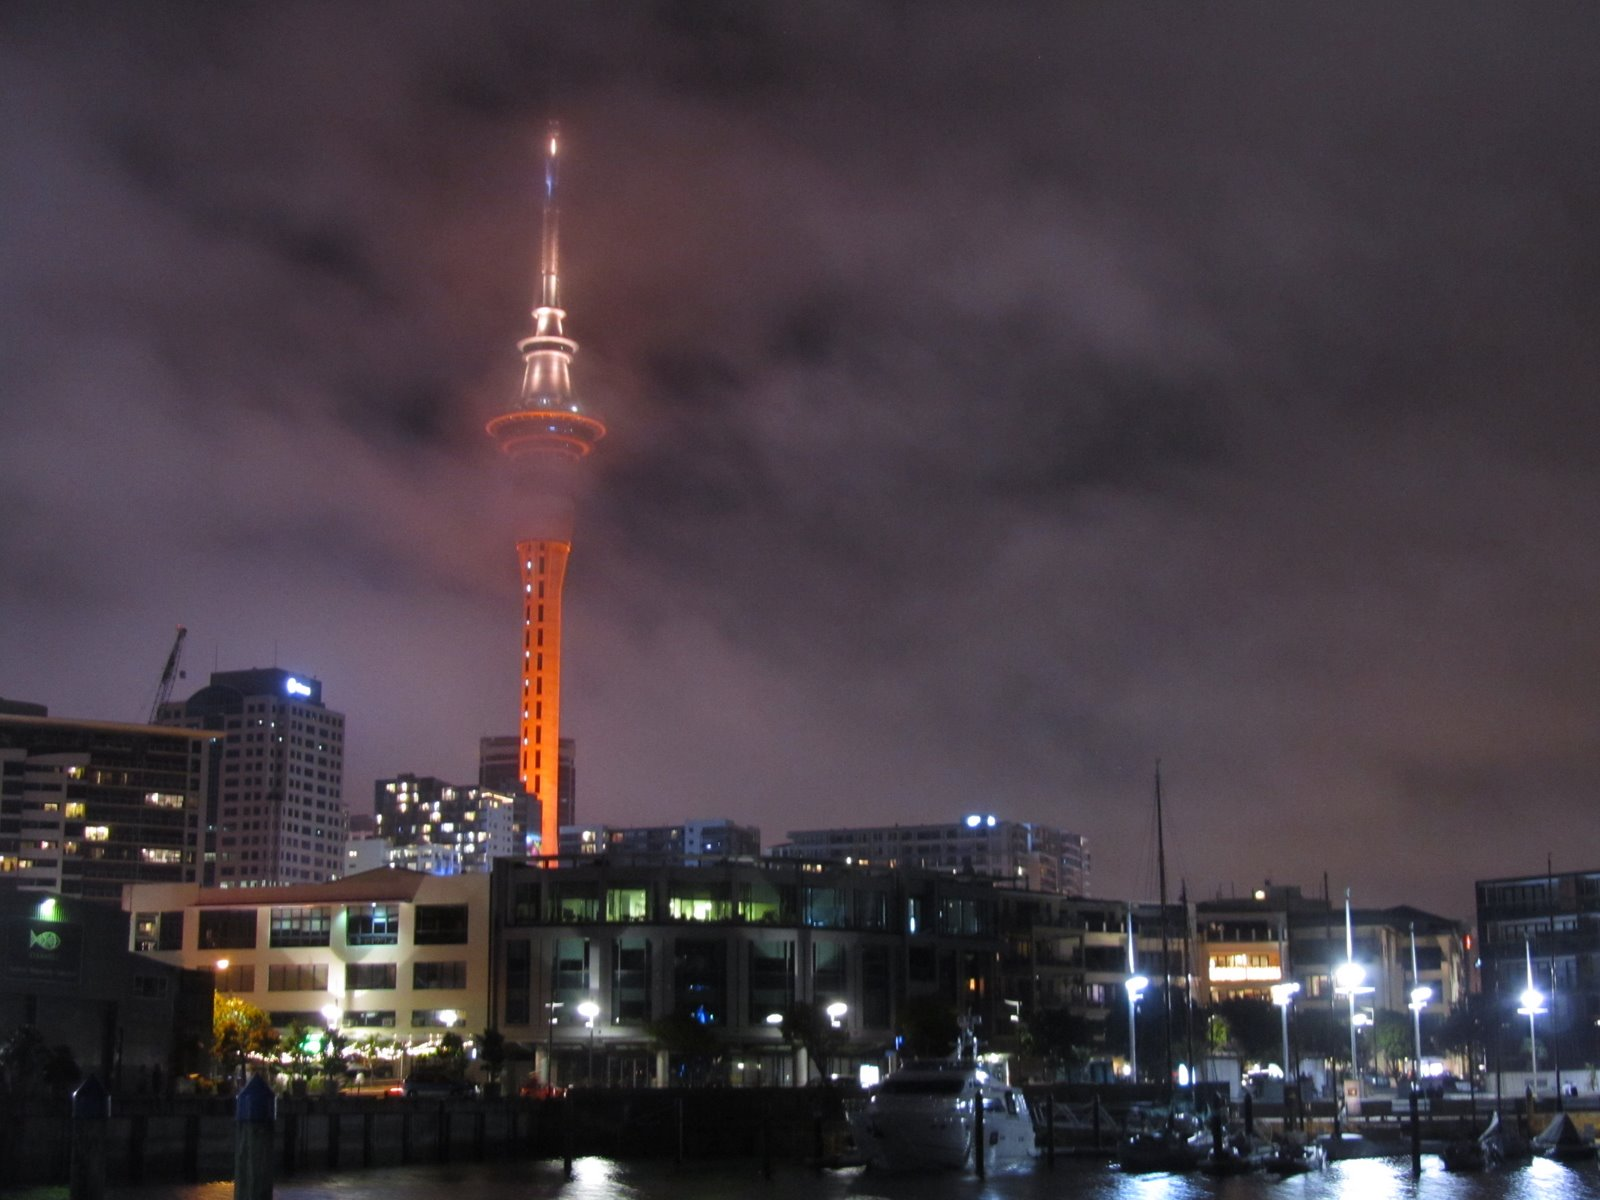 magi and sam new years 2012 auckland sky tower people. Black Bedroom Furniture Sets. Home Design Ideas